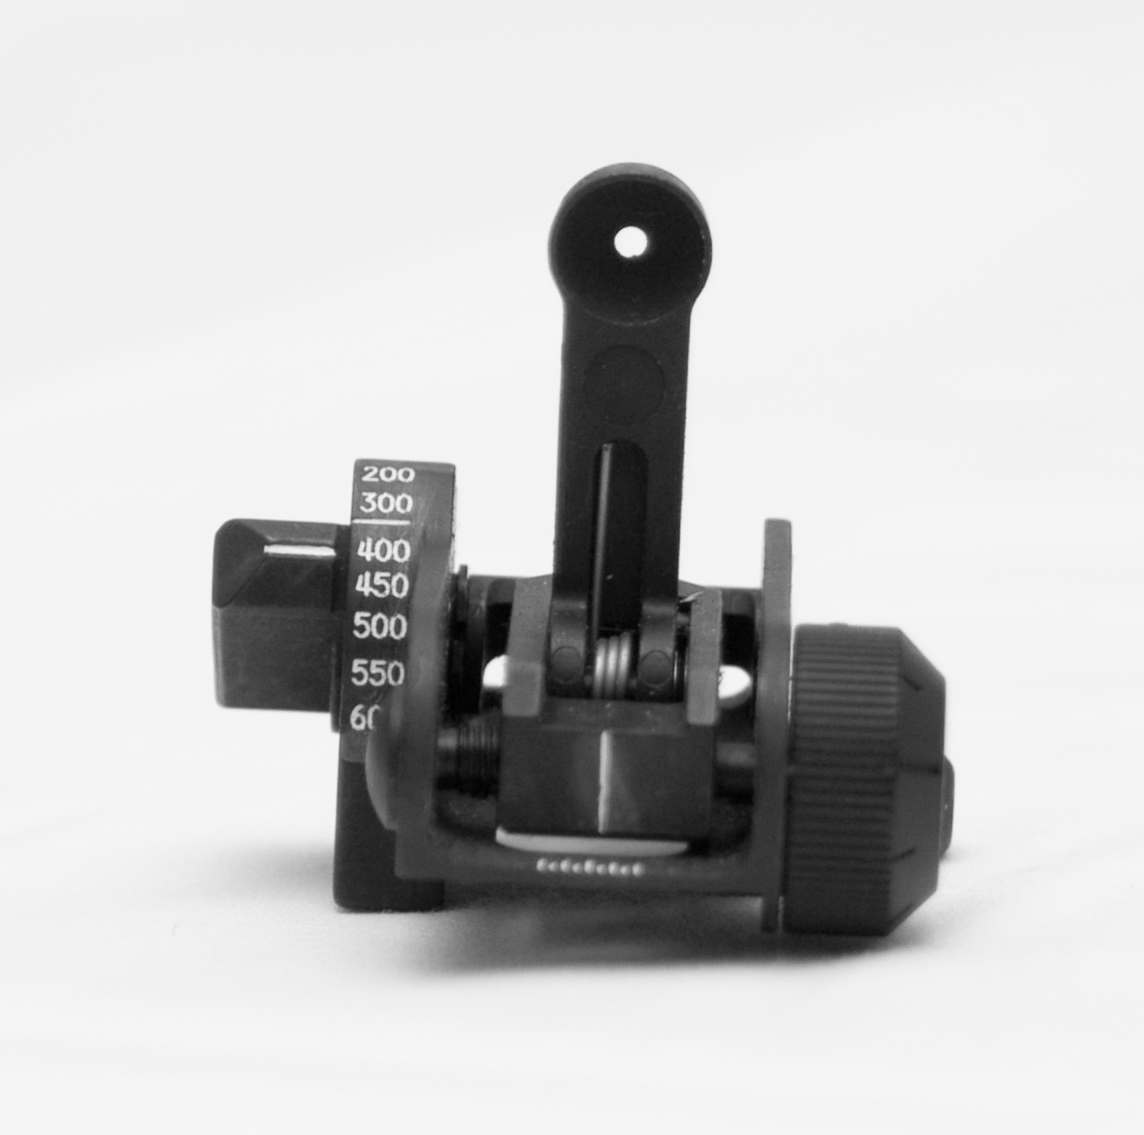 Preppers: It's Time to Ditch the Iron-Sights-Only Builds